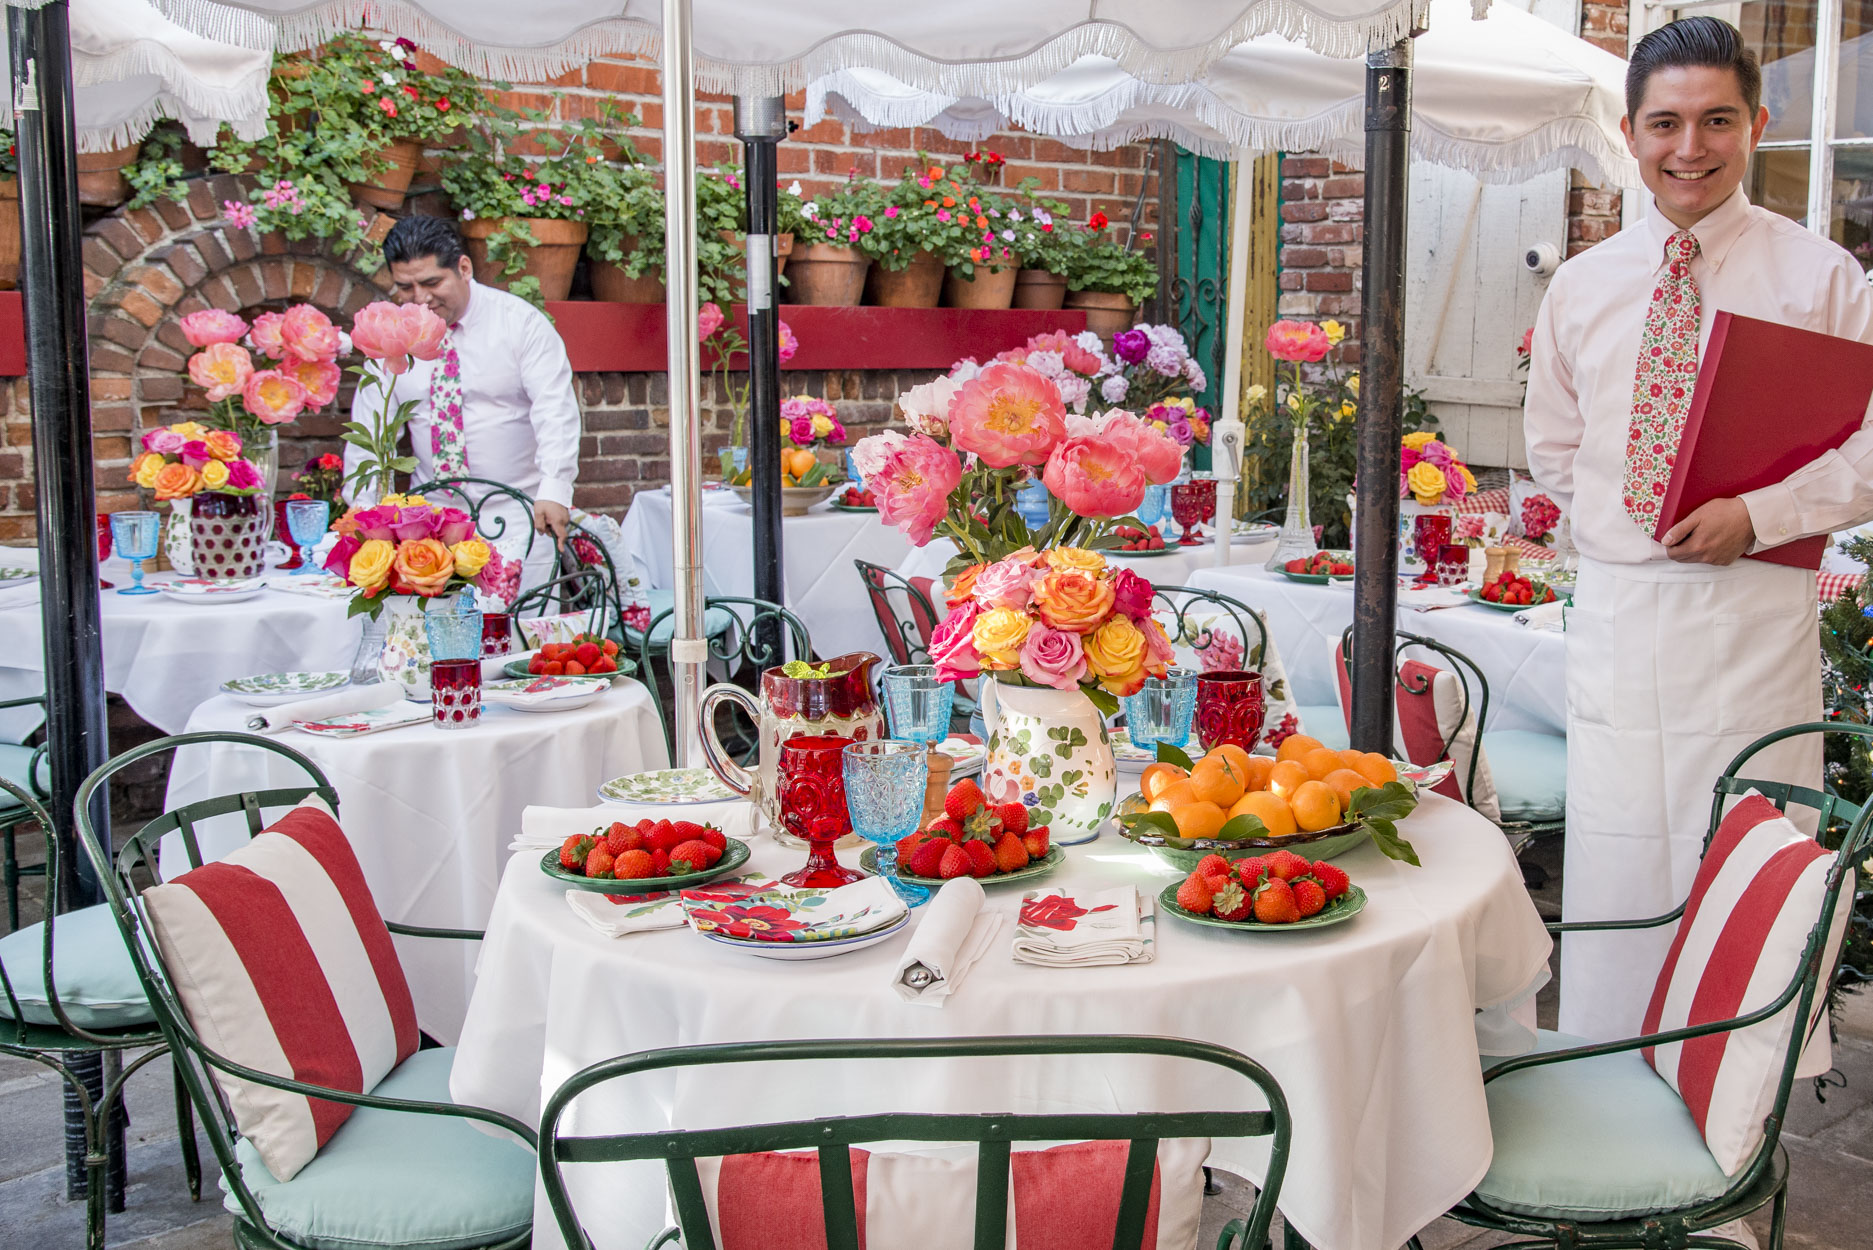 The Ivy Restaurant outdoor patio with french garden chairs, roses and peonies on every table and 